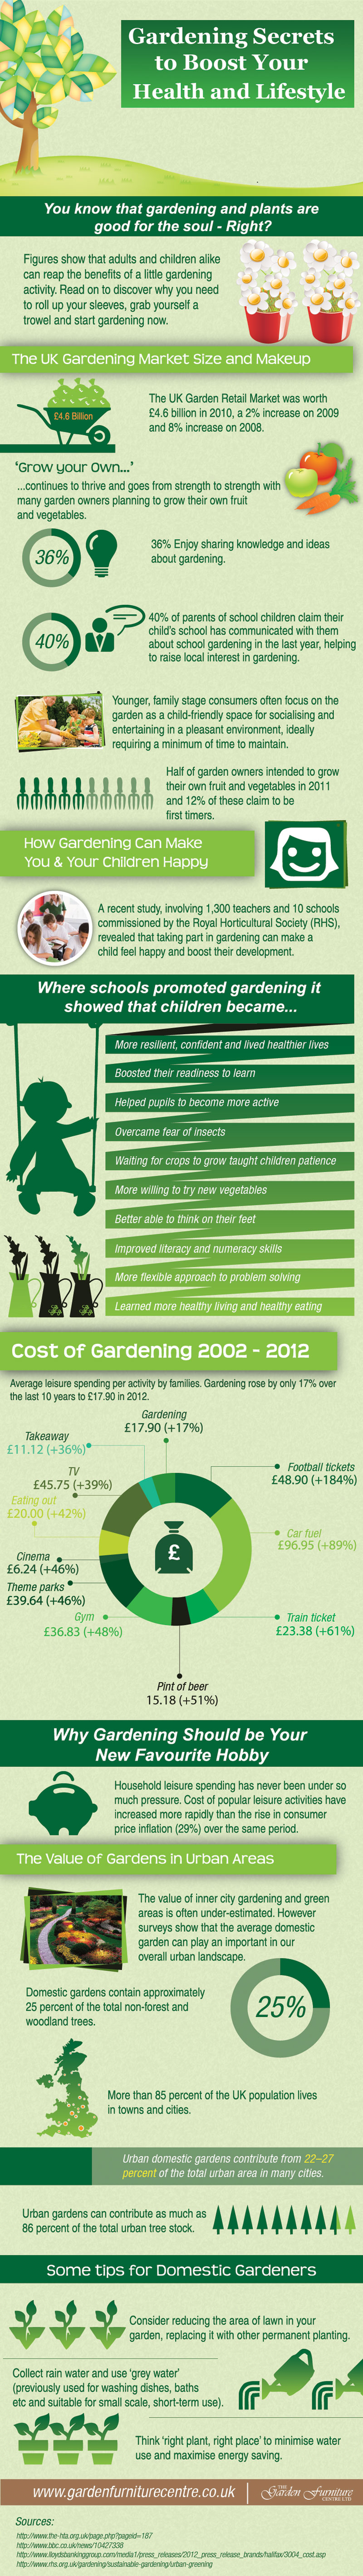 How Gardening Can Help You Save Money And Improve Your